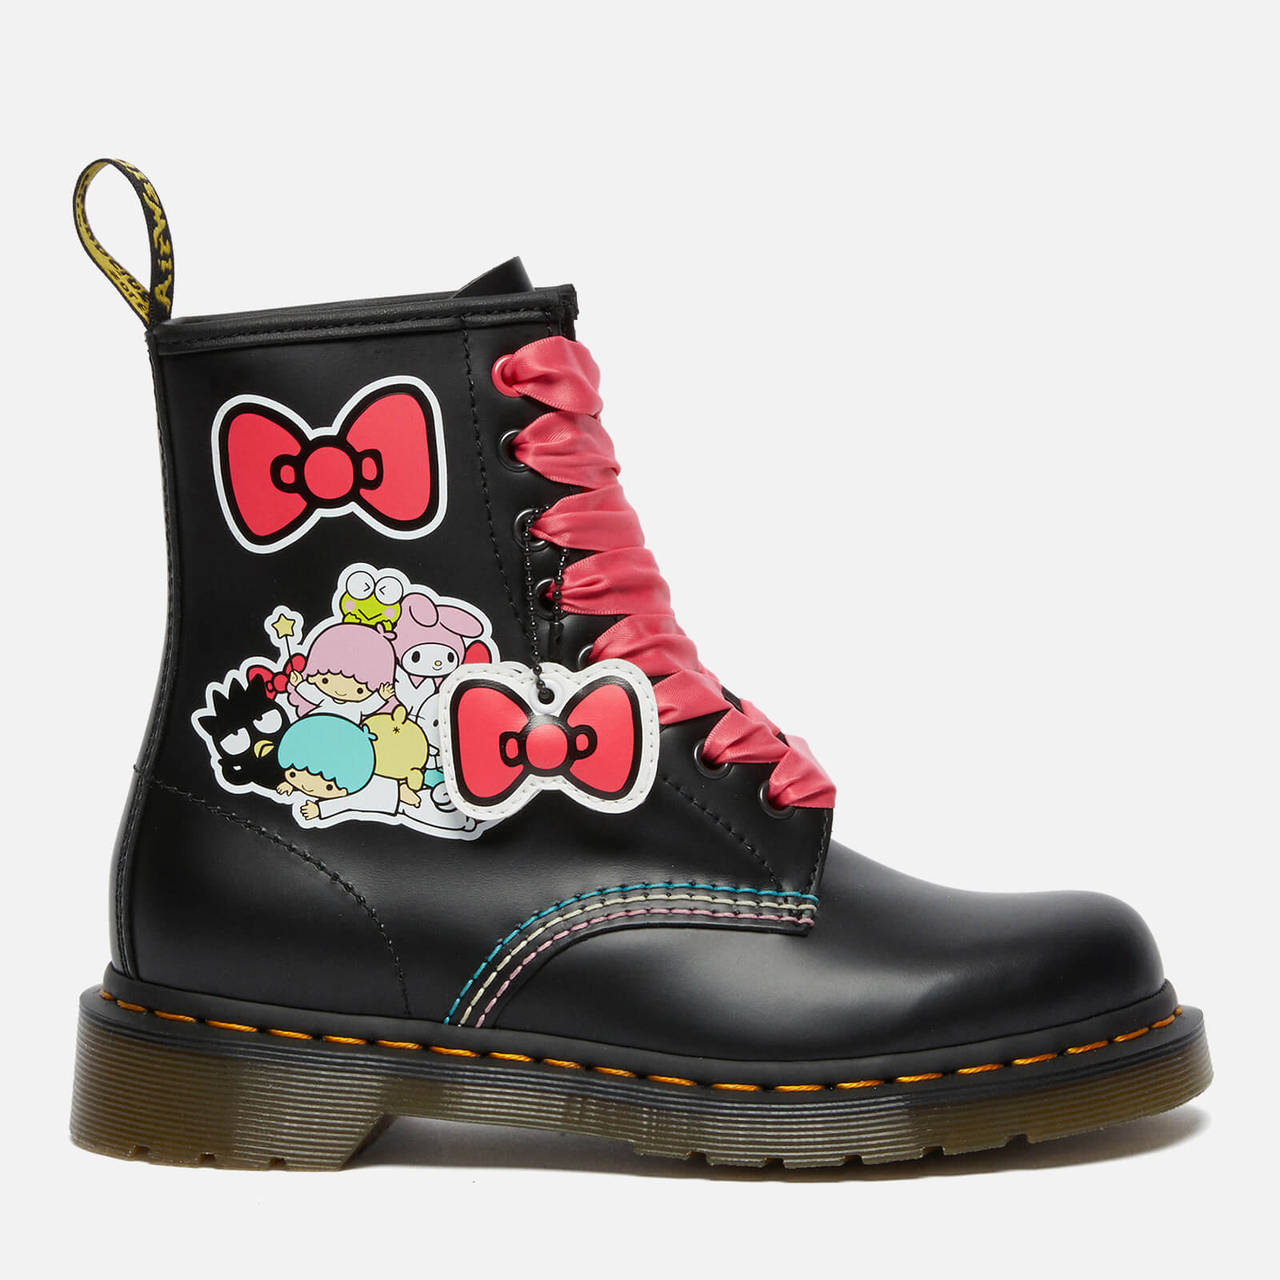 【上新】DR. MARTENS X Hello Kitty 联名系列马丁靴